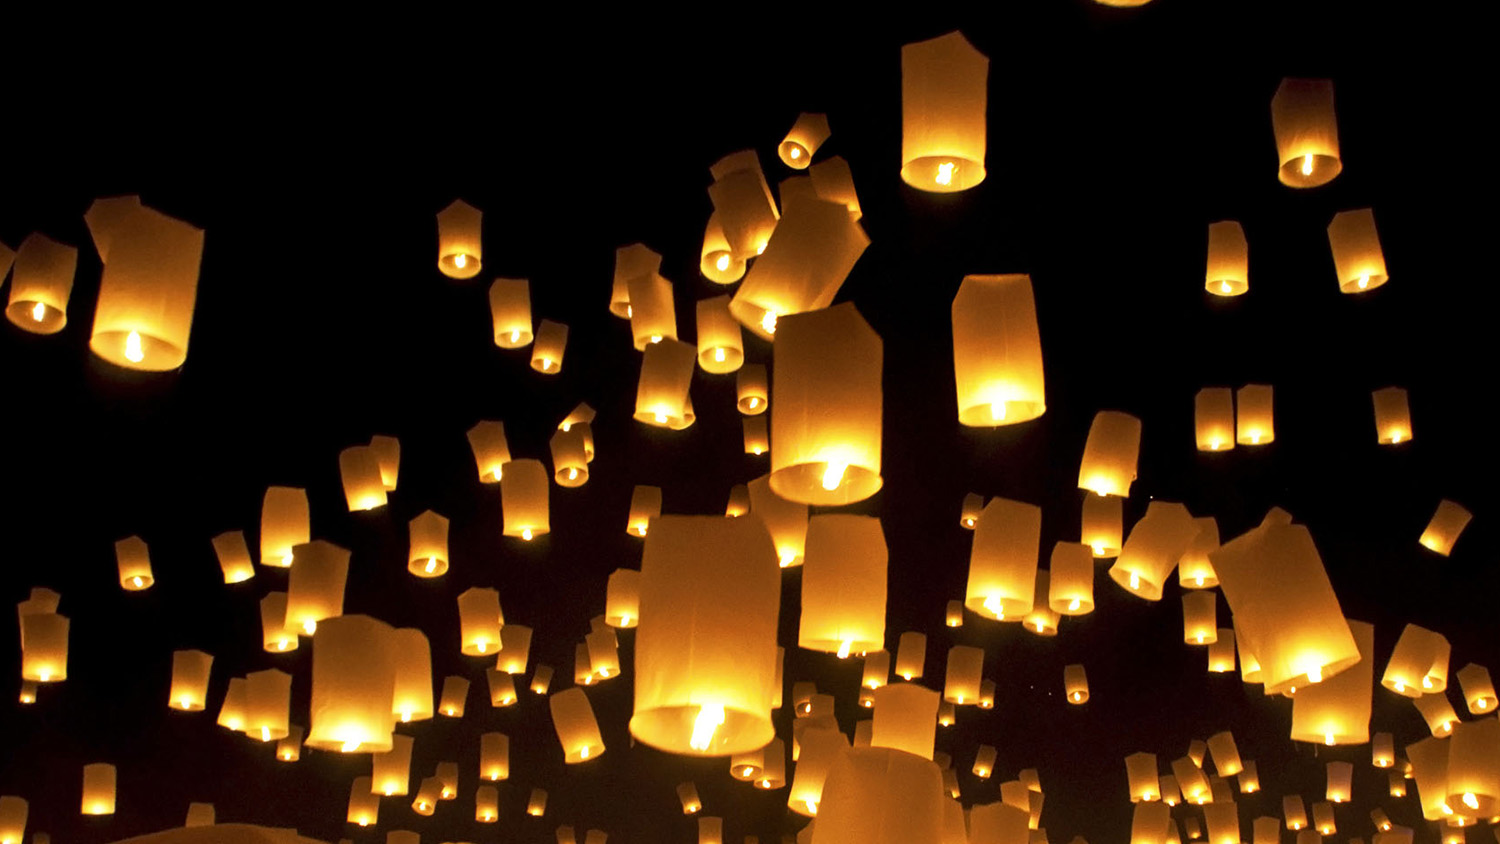 'We are trying to put an end to this irresponsible activity' - Farmers and local residents shut down major sky lantern festival